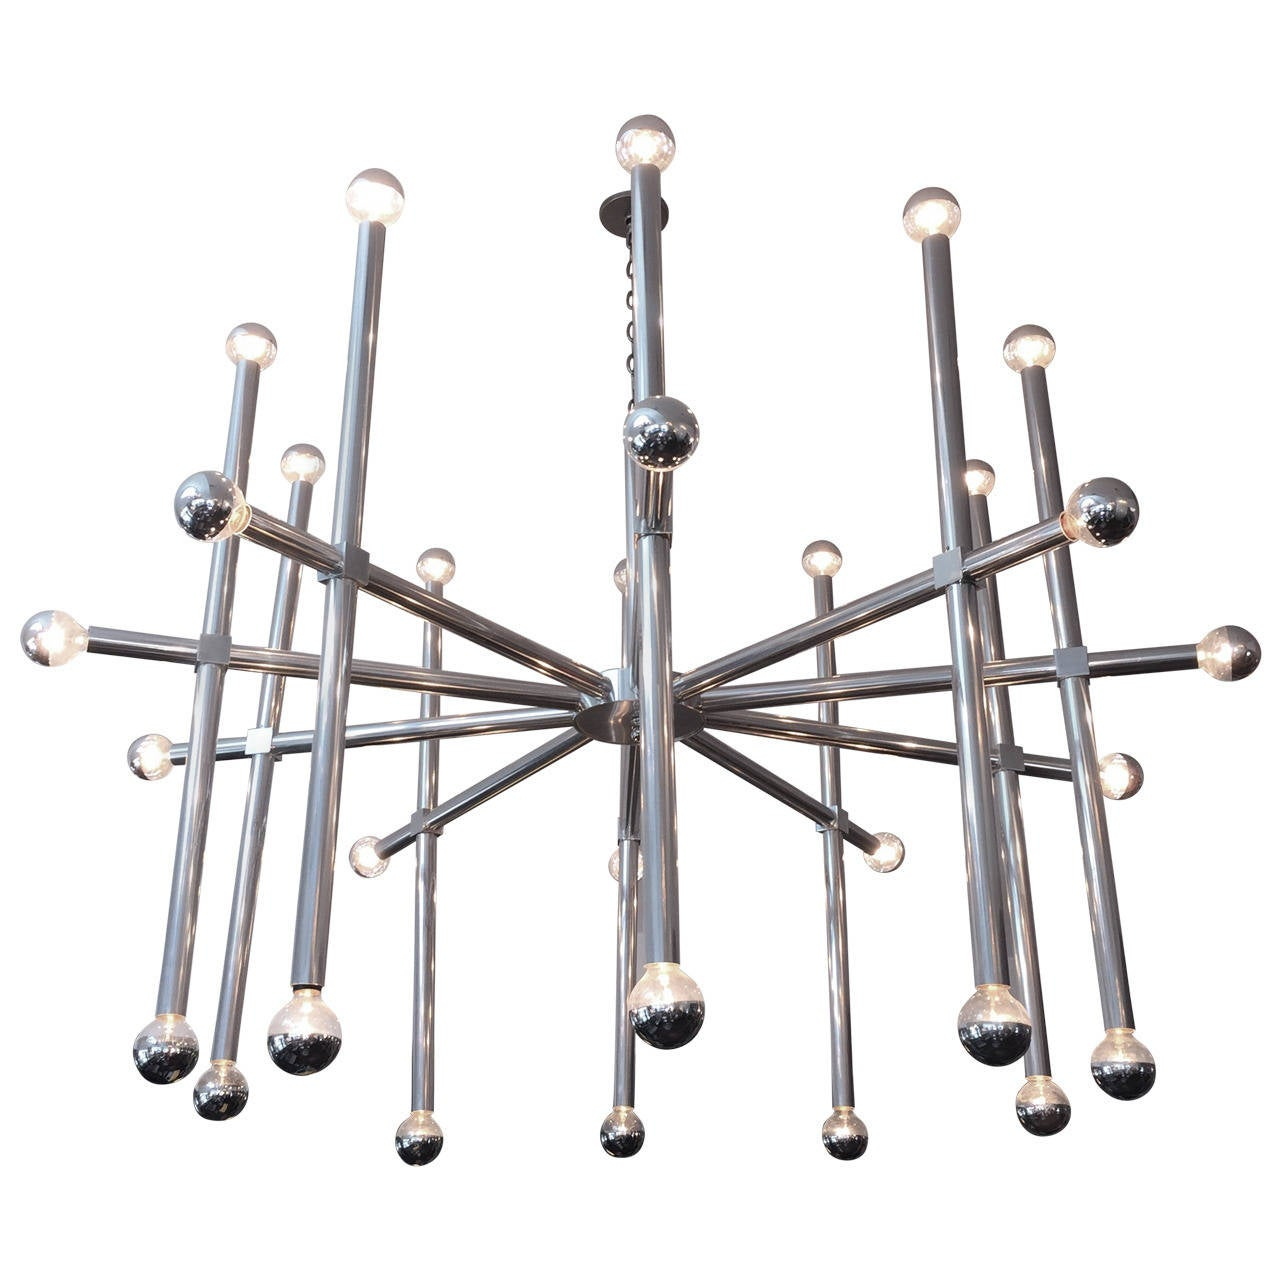 Oversized Ten-Arm Aluminum Chandelier with 30 Lights by John Vesey